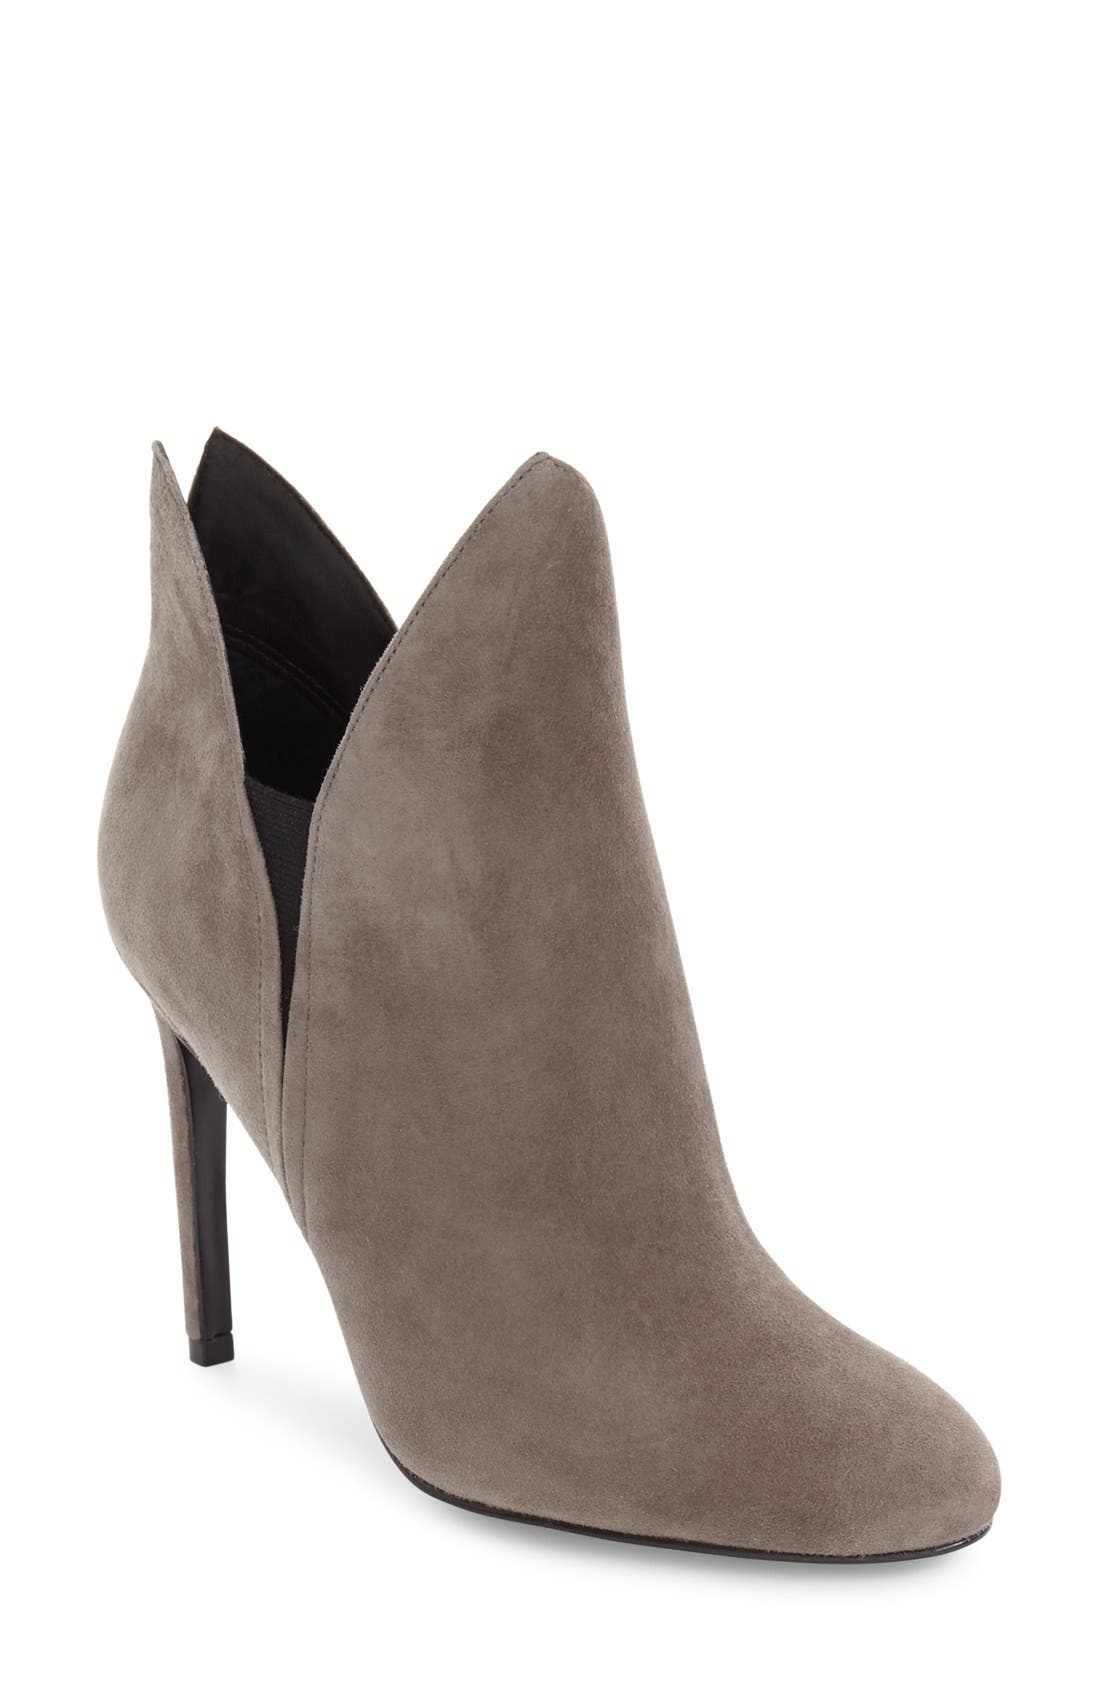 Main Image - KENDALL + KYLIE Madison Bootie (Women)